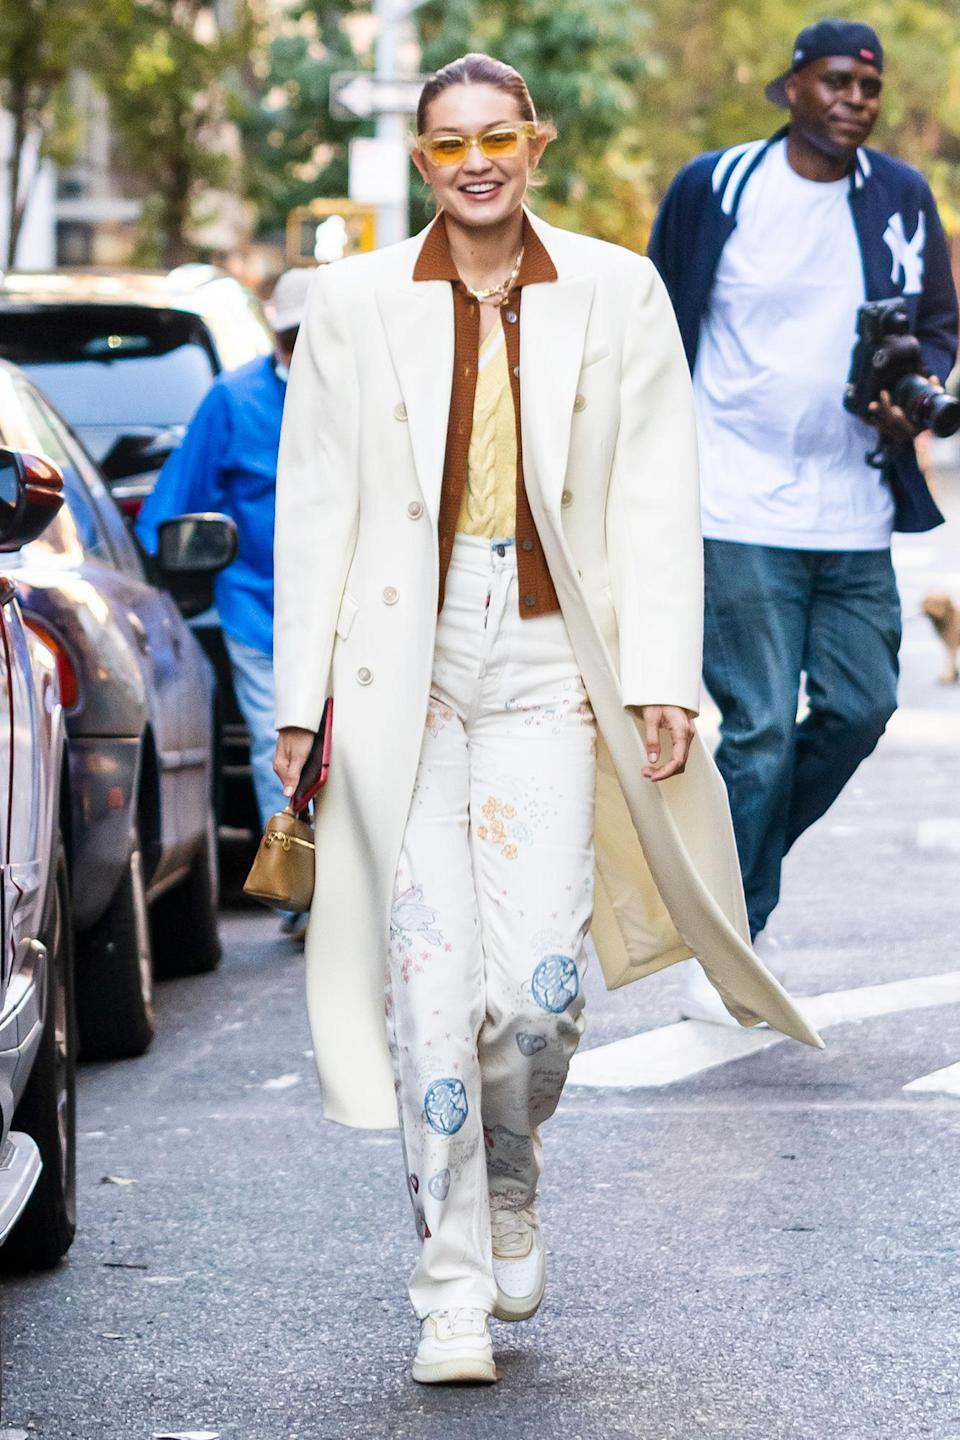 <p>Gigi Hadid sports a long white coat with a stylish pair of yellow sunglasses while out in Soho on Oct. 11 in N.Y.C. </p>